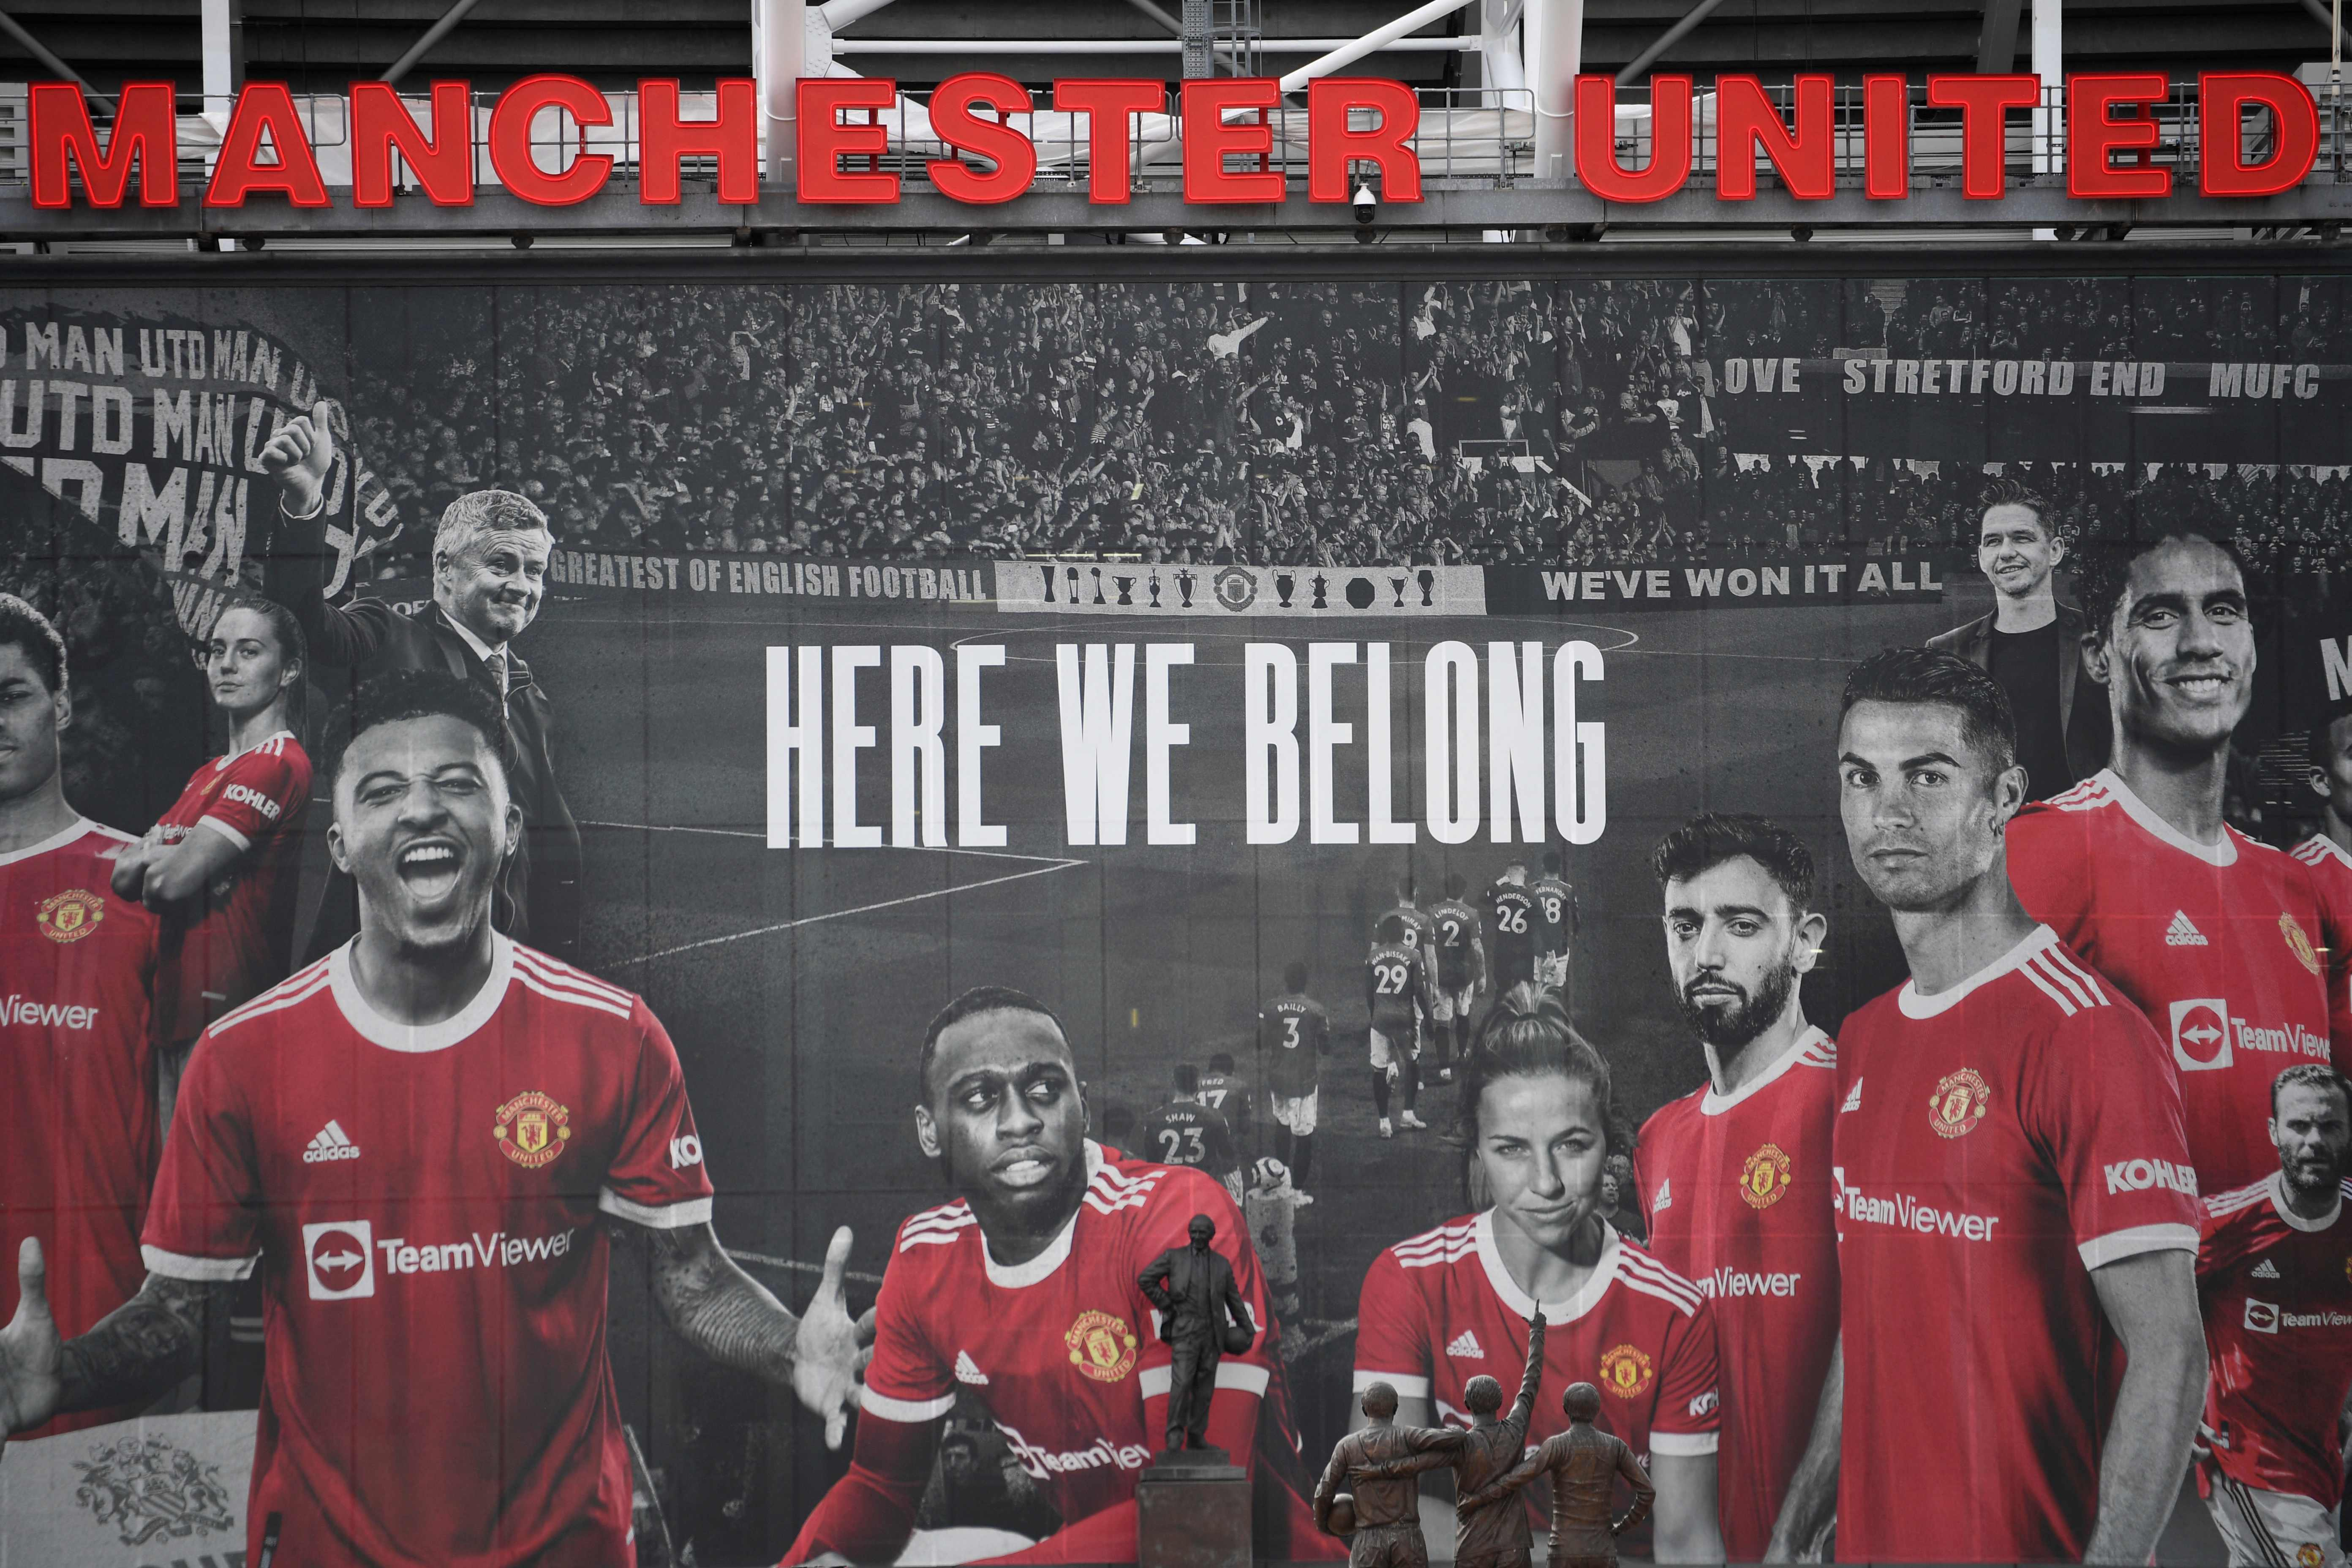 Old Trafford is set to be packed to see the legend's return